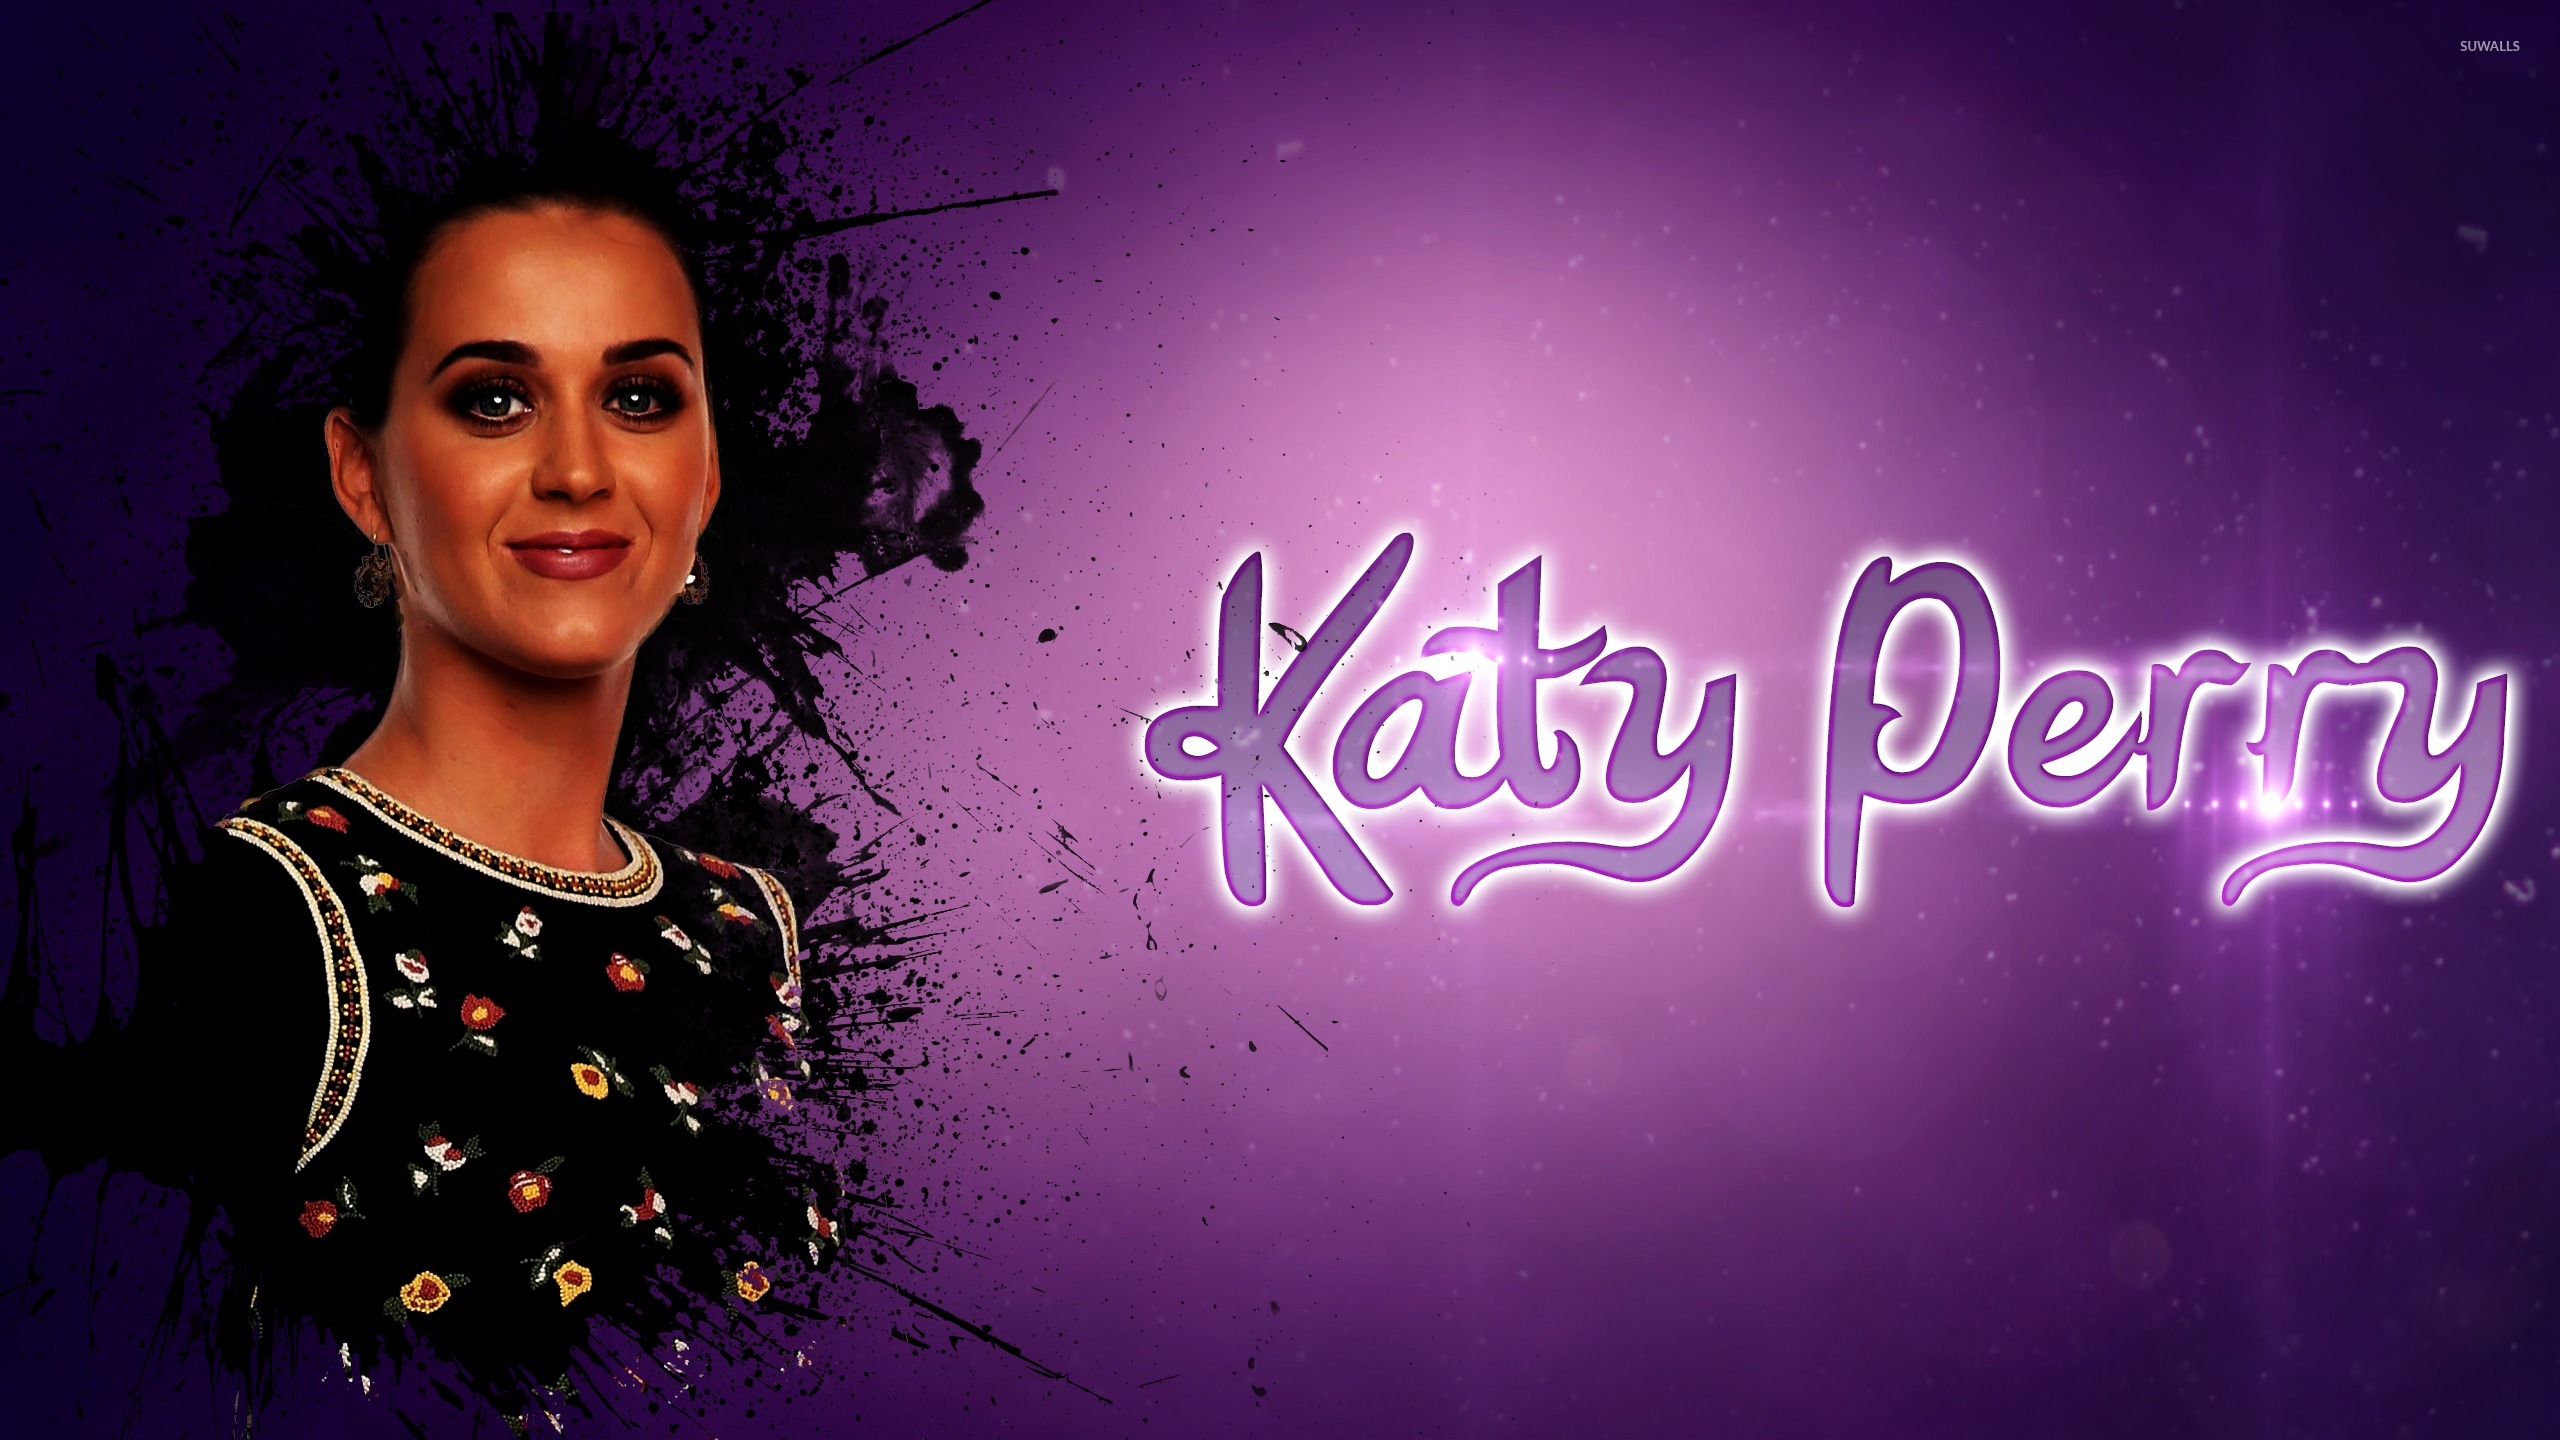 Wallpaper Adidas 3d Katy Perry 78 Wallpaper Celebrity Wallpapers 25676